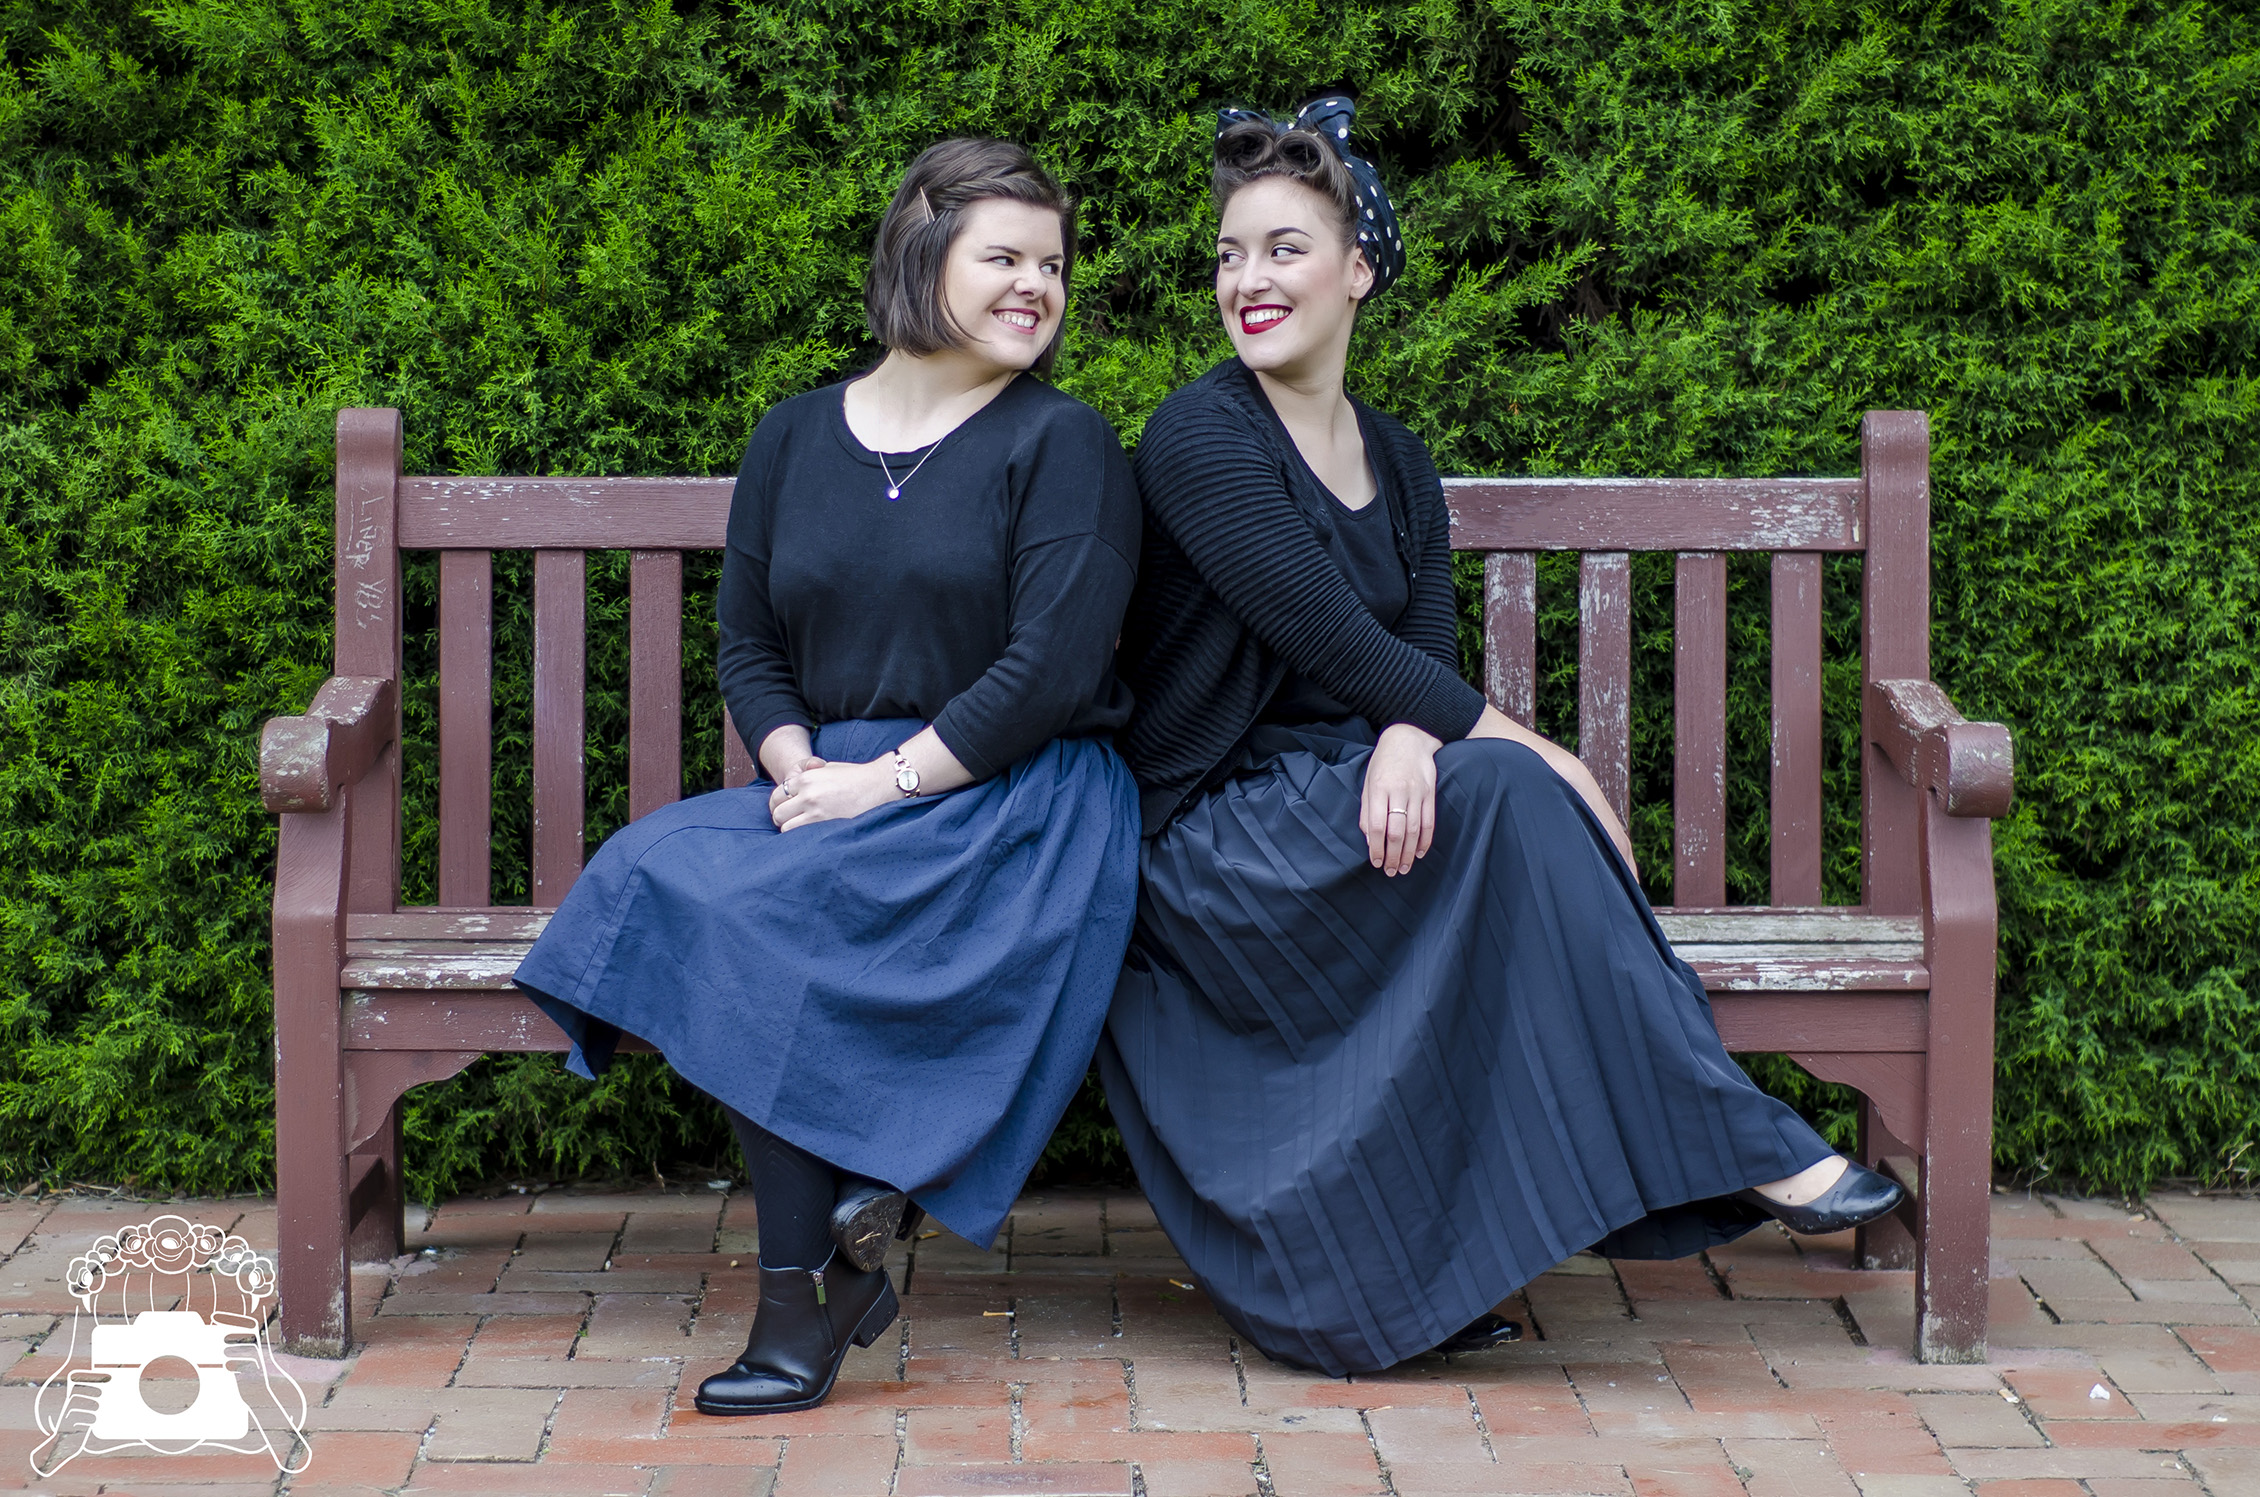 Jess and Ilana in their theatre blacks,Anita G Photography